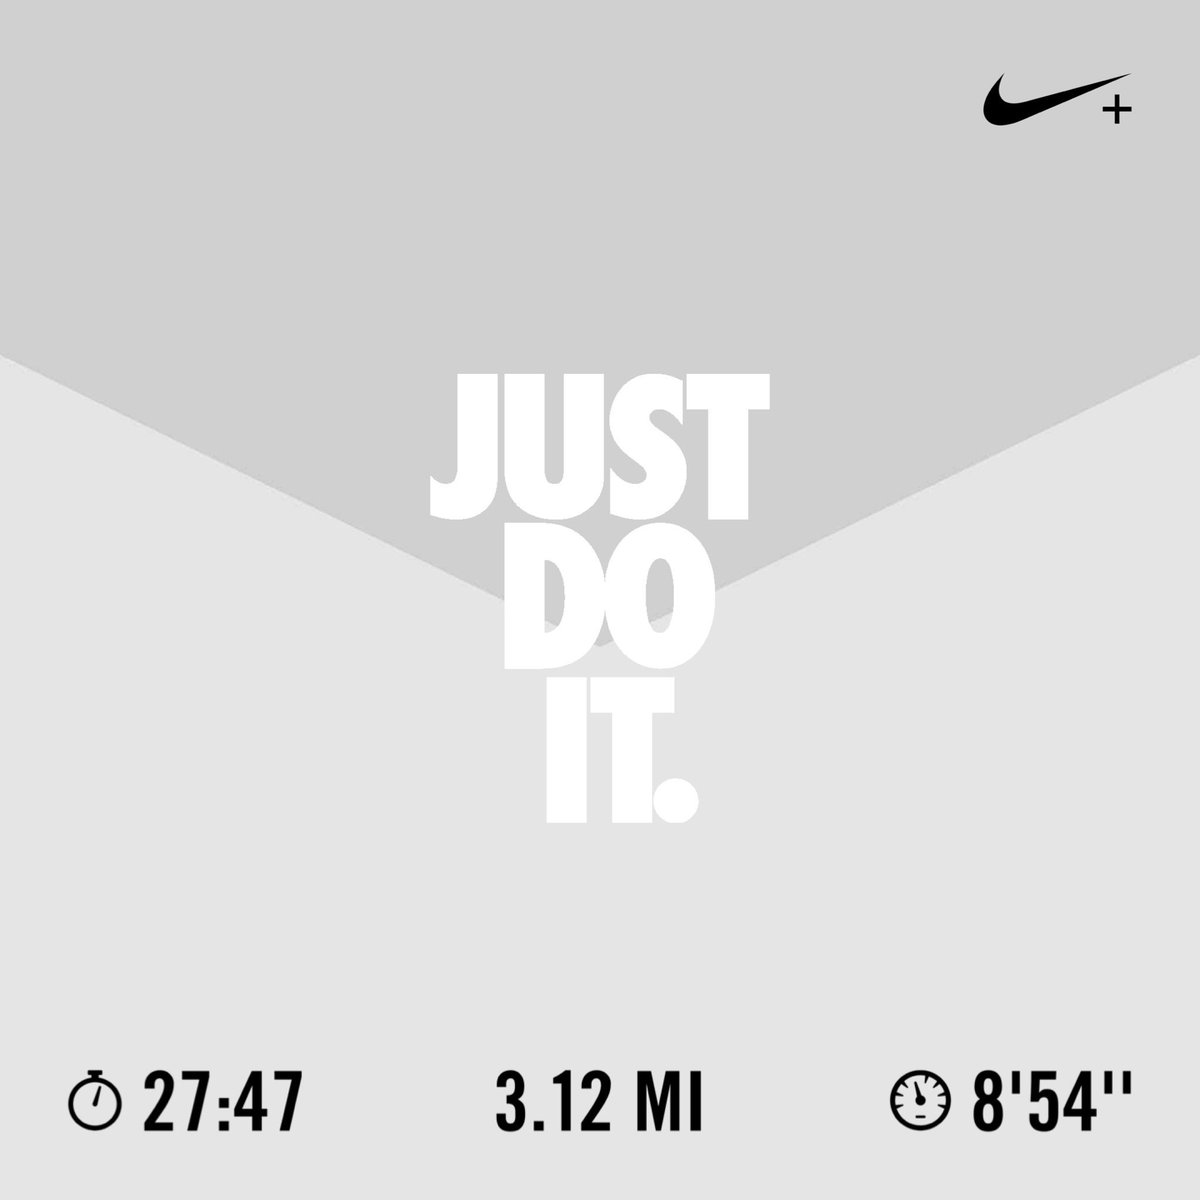 PR today - 8:54 #nikerunning #warrior #personalgrowth <br>http://pic.twitter.com/UdOkCxNu8b